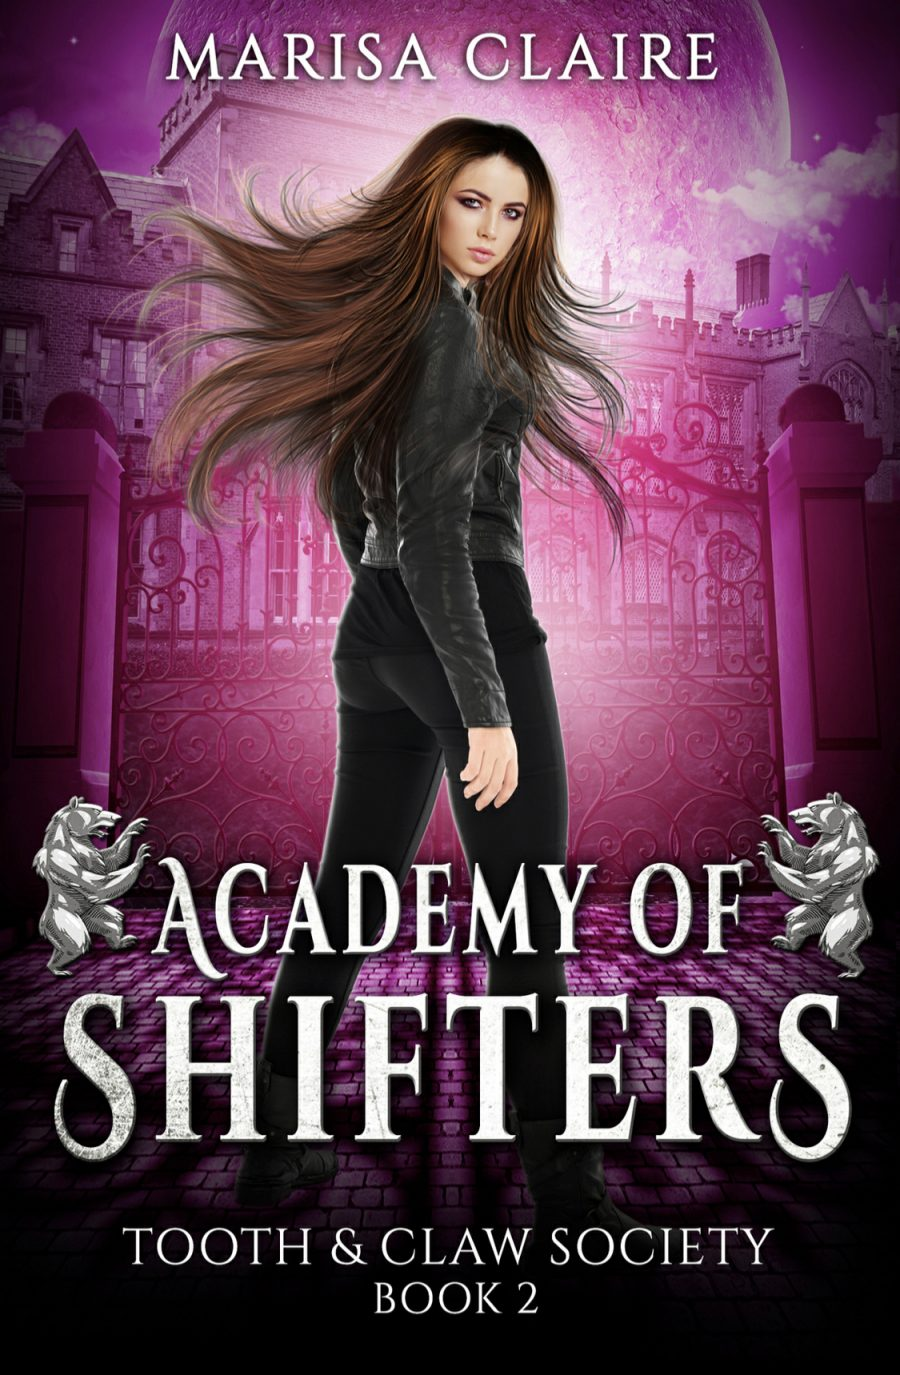 Tooth & Claw Society (Academy of Shifters - Book 2) by Marisa Claire - A Book Review #BookReview #YA #PNR #Academy #KindleUnlimited #KU